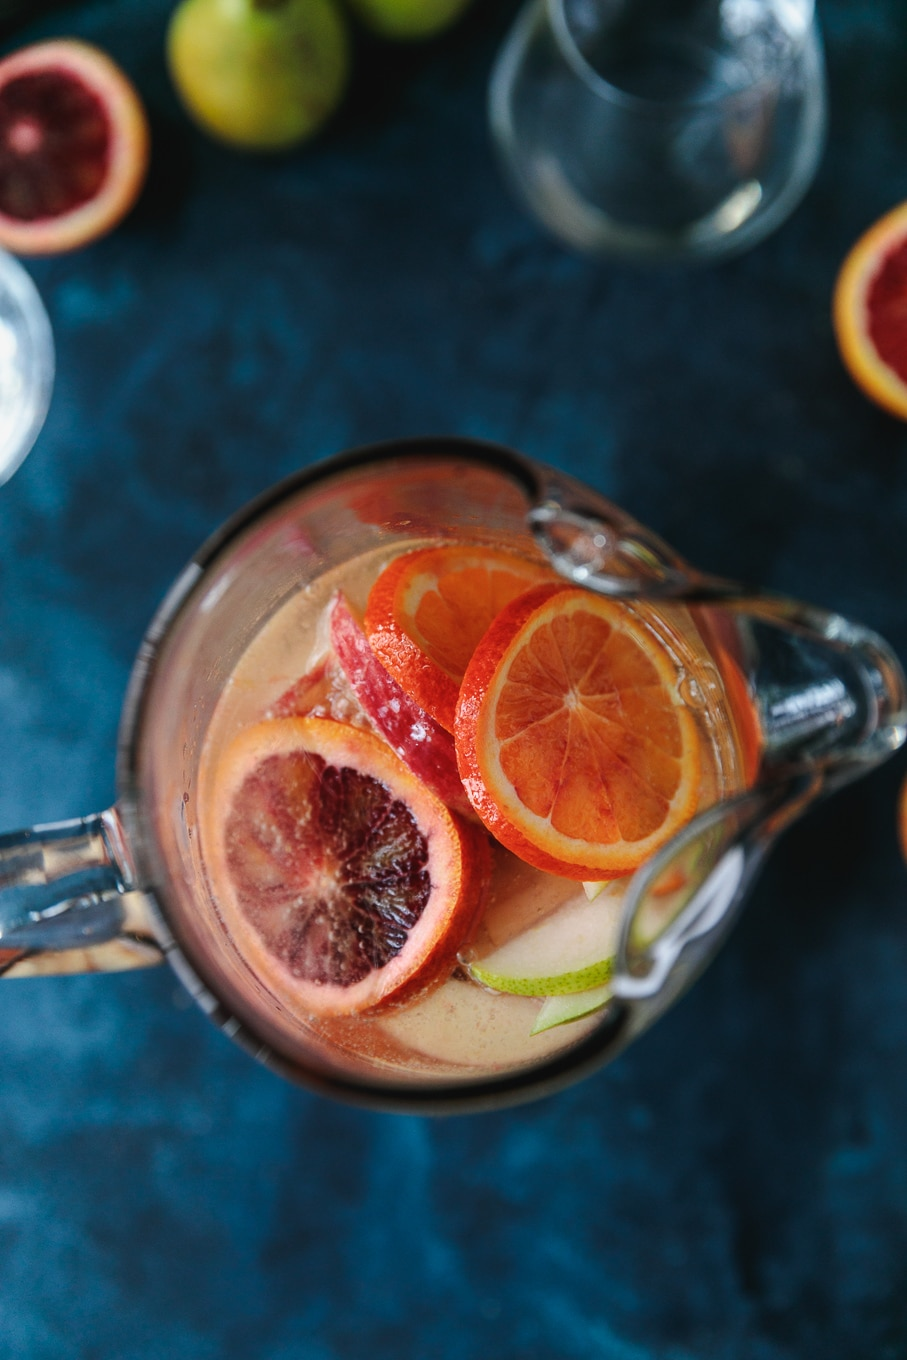 Overhead shot of a pitcher filled with pink sparkling blood orange sangria filled with sliced apples, pears, and blood oranges